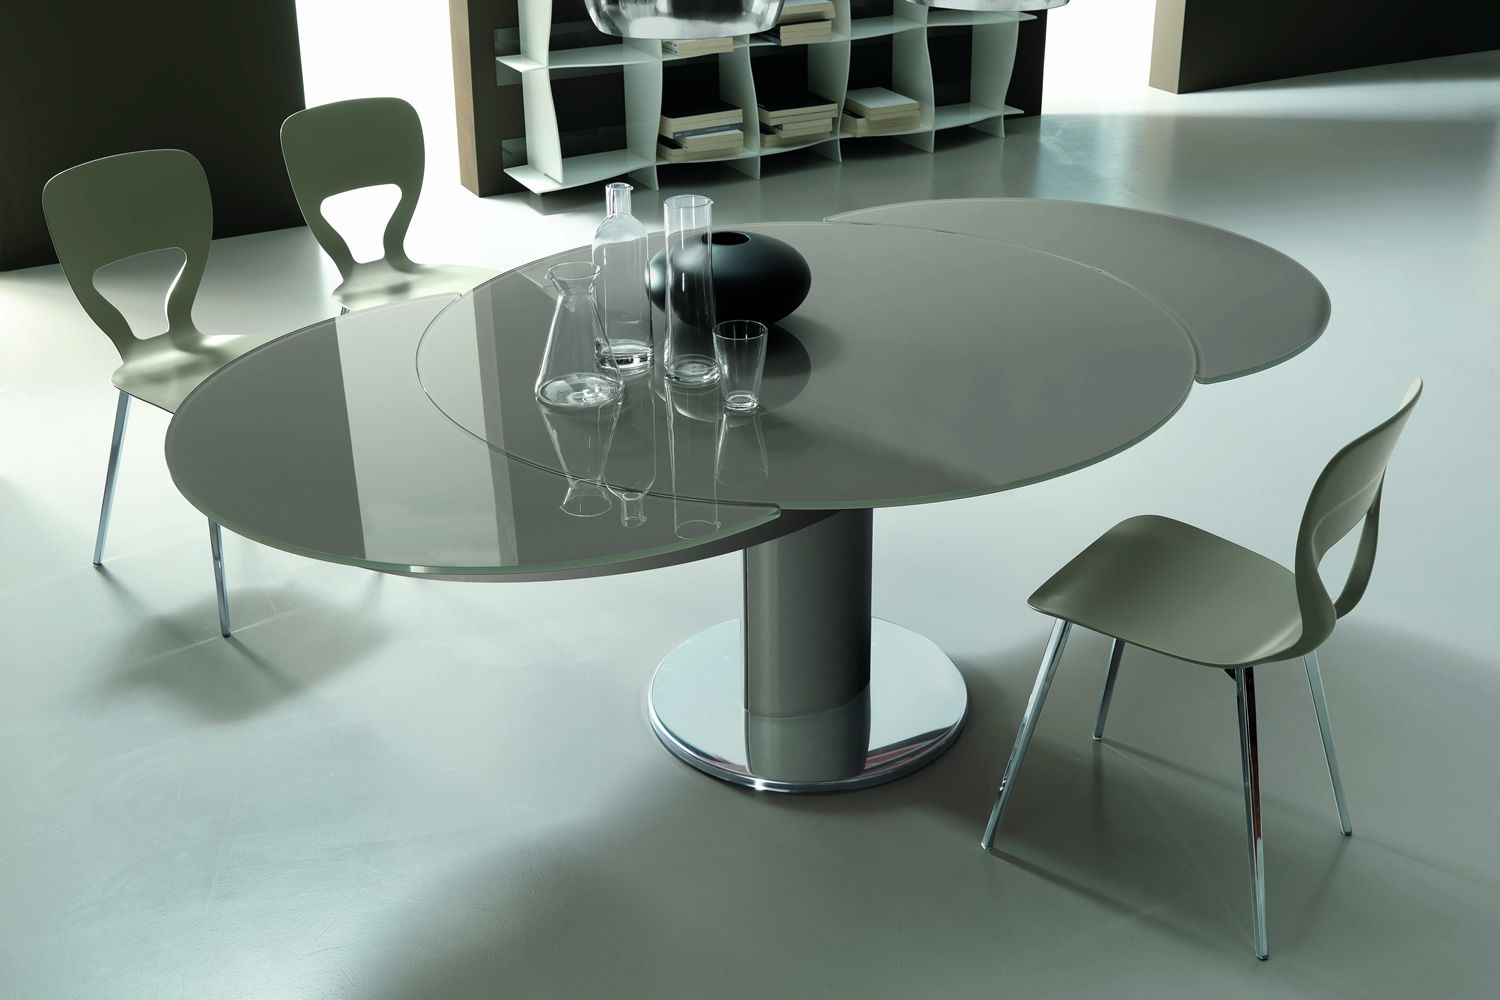 Giro table design ronde de bontempi casa extensible for Table ronde extensible design